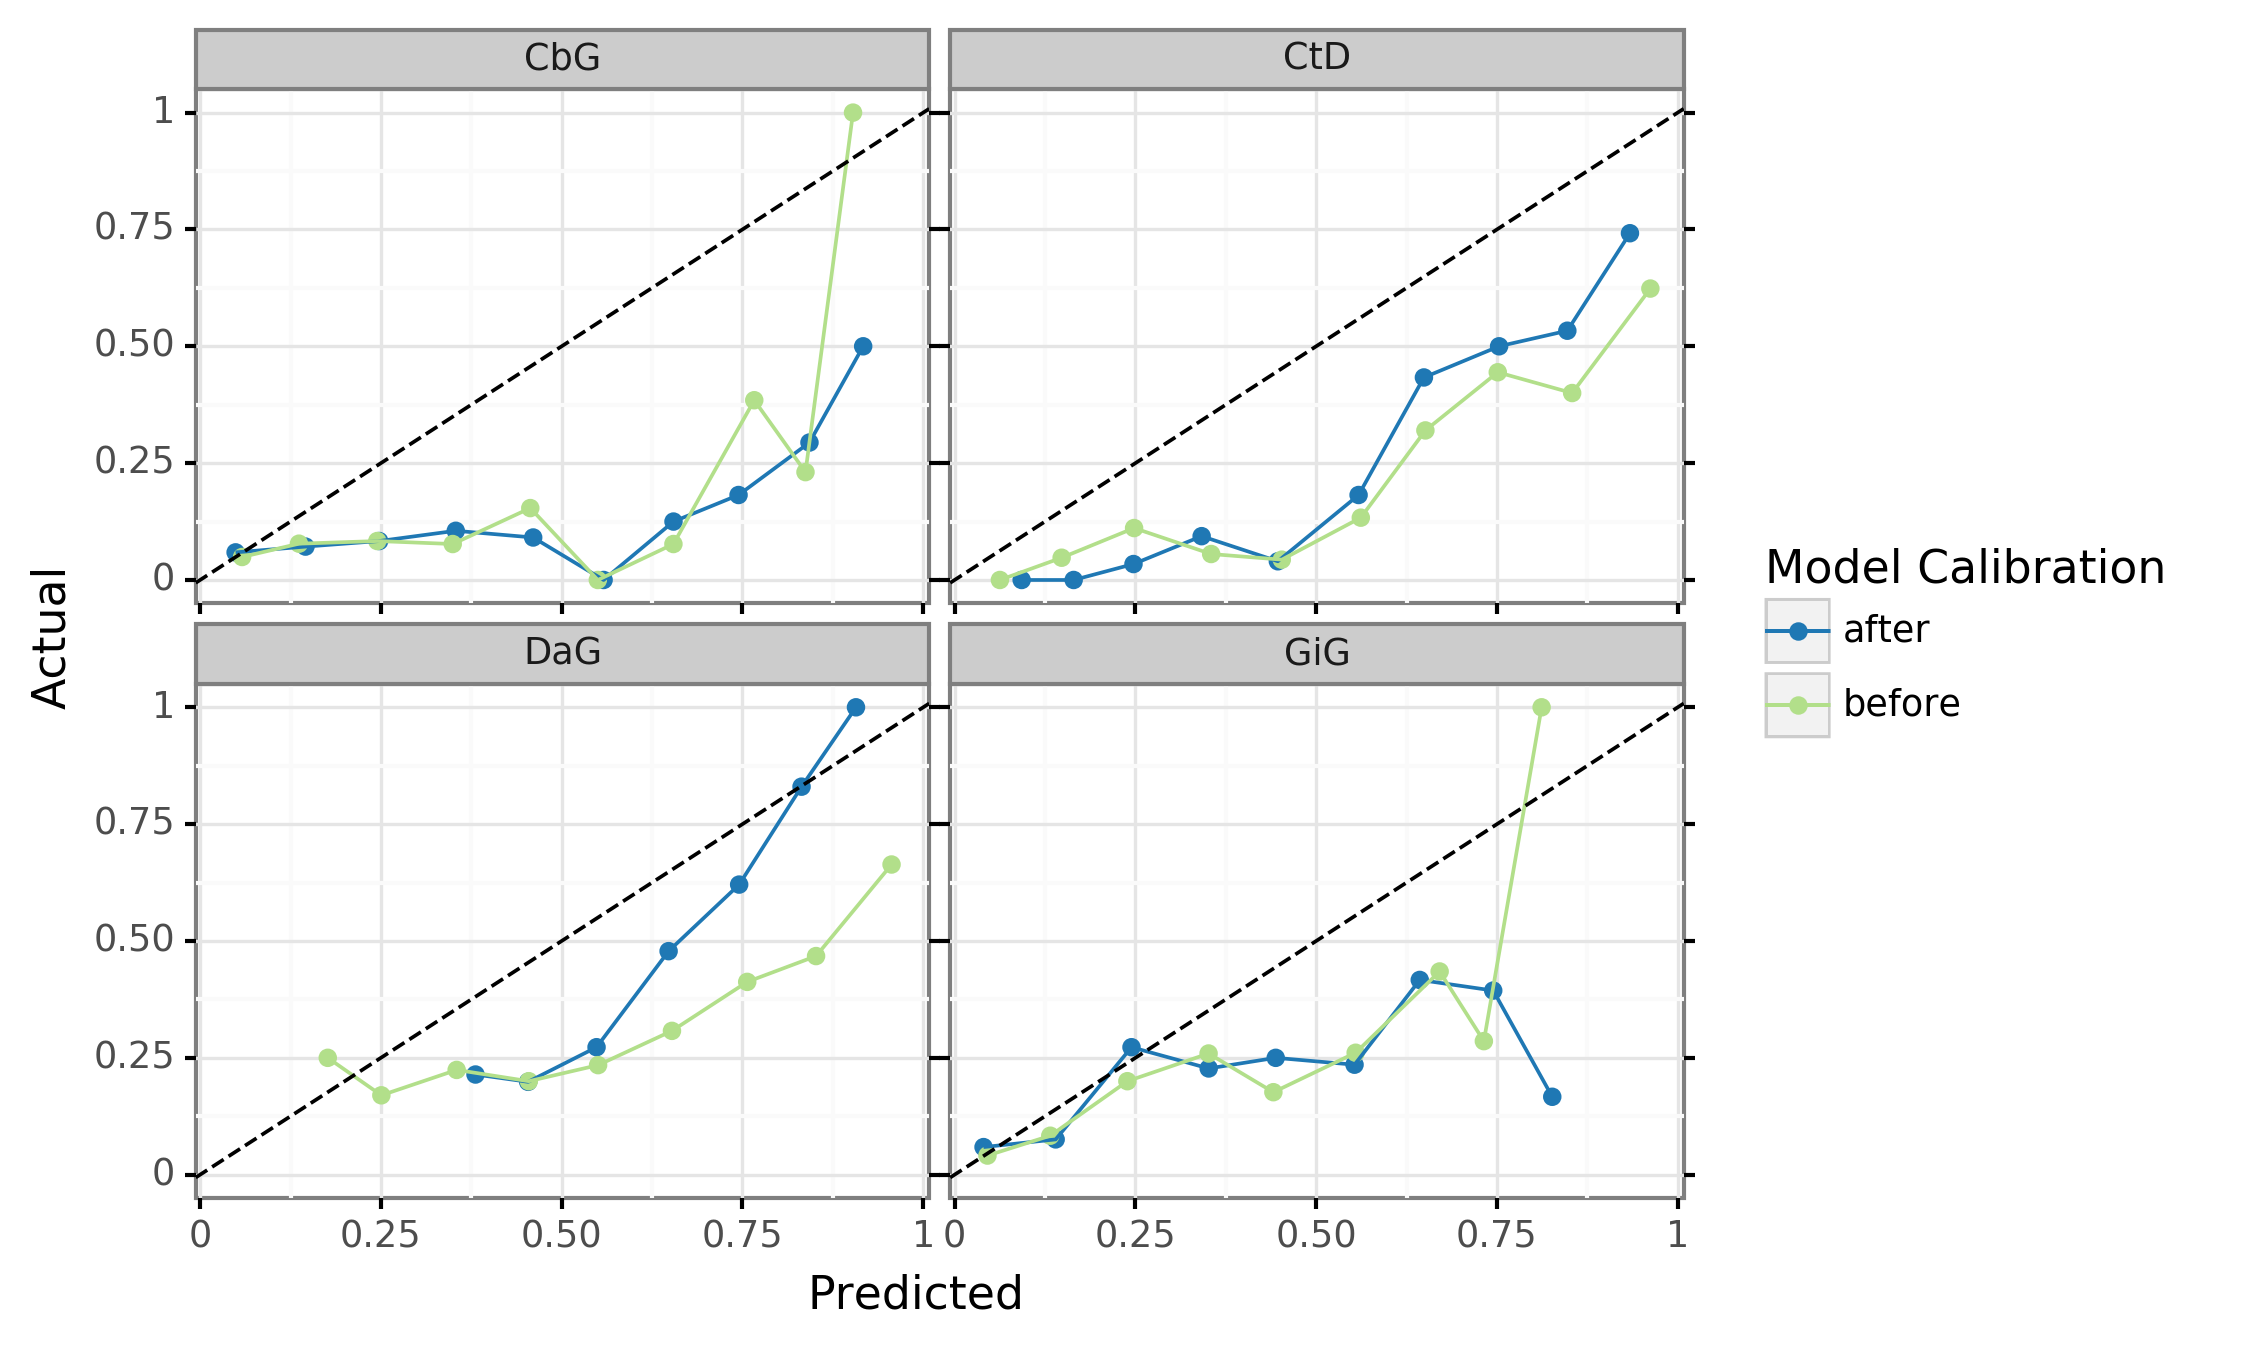 Figure 9: Calibration plots for the discriminative model. A perfectly calibrated model would follow the dashed diagonal line. The blue line represents the predictions before calibration and the orange line shows predictions after calibration.